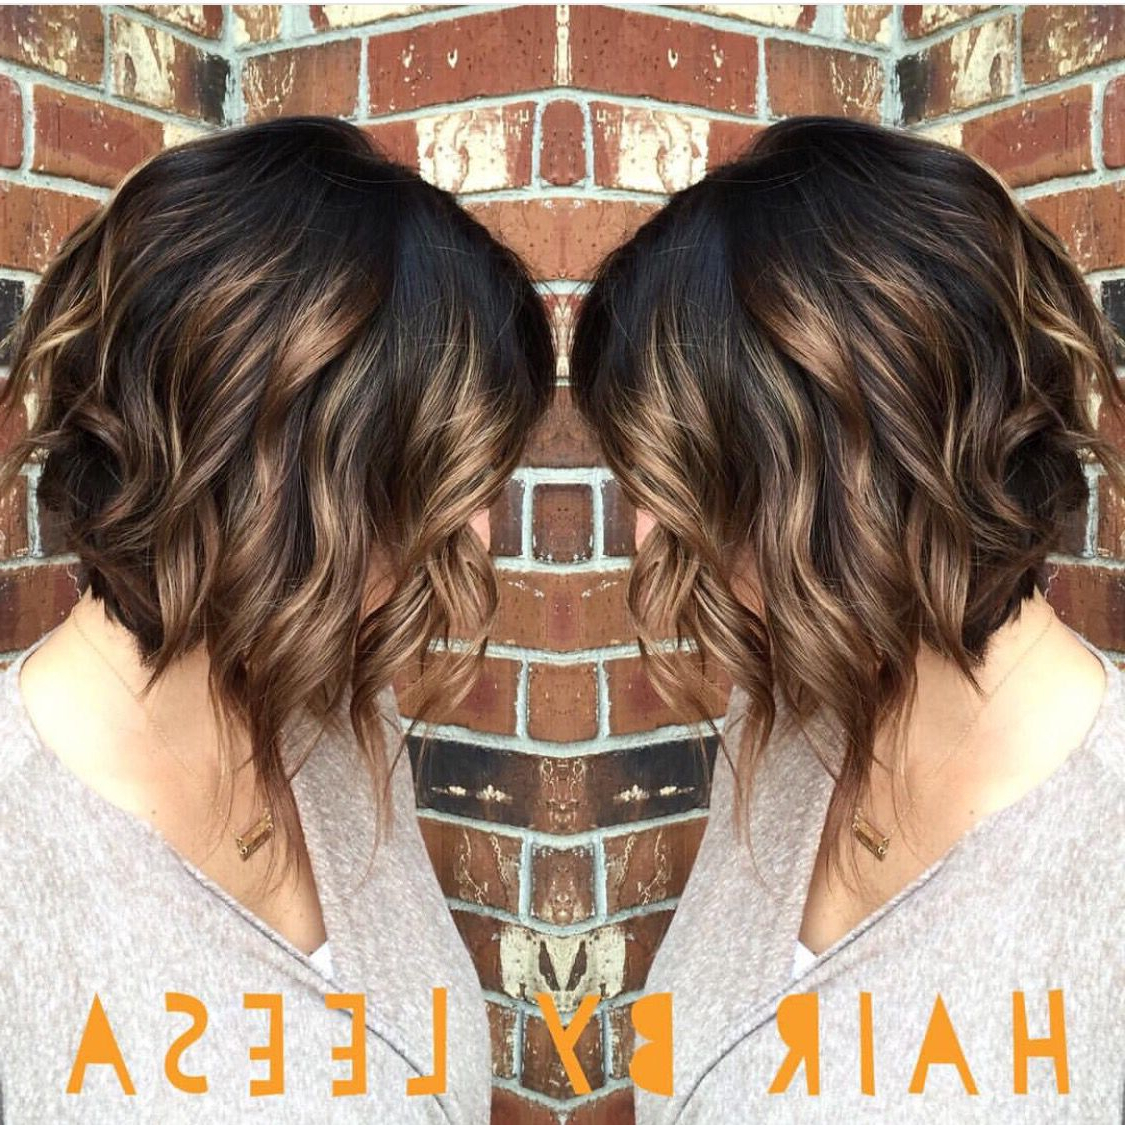 Love These Curls | B&f | Pinterest | Balayage Highlights, Balayage With Regard To Nape Length Curly Balayage Bob Hairstyles (View 20 of 20)